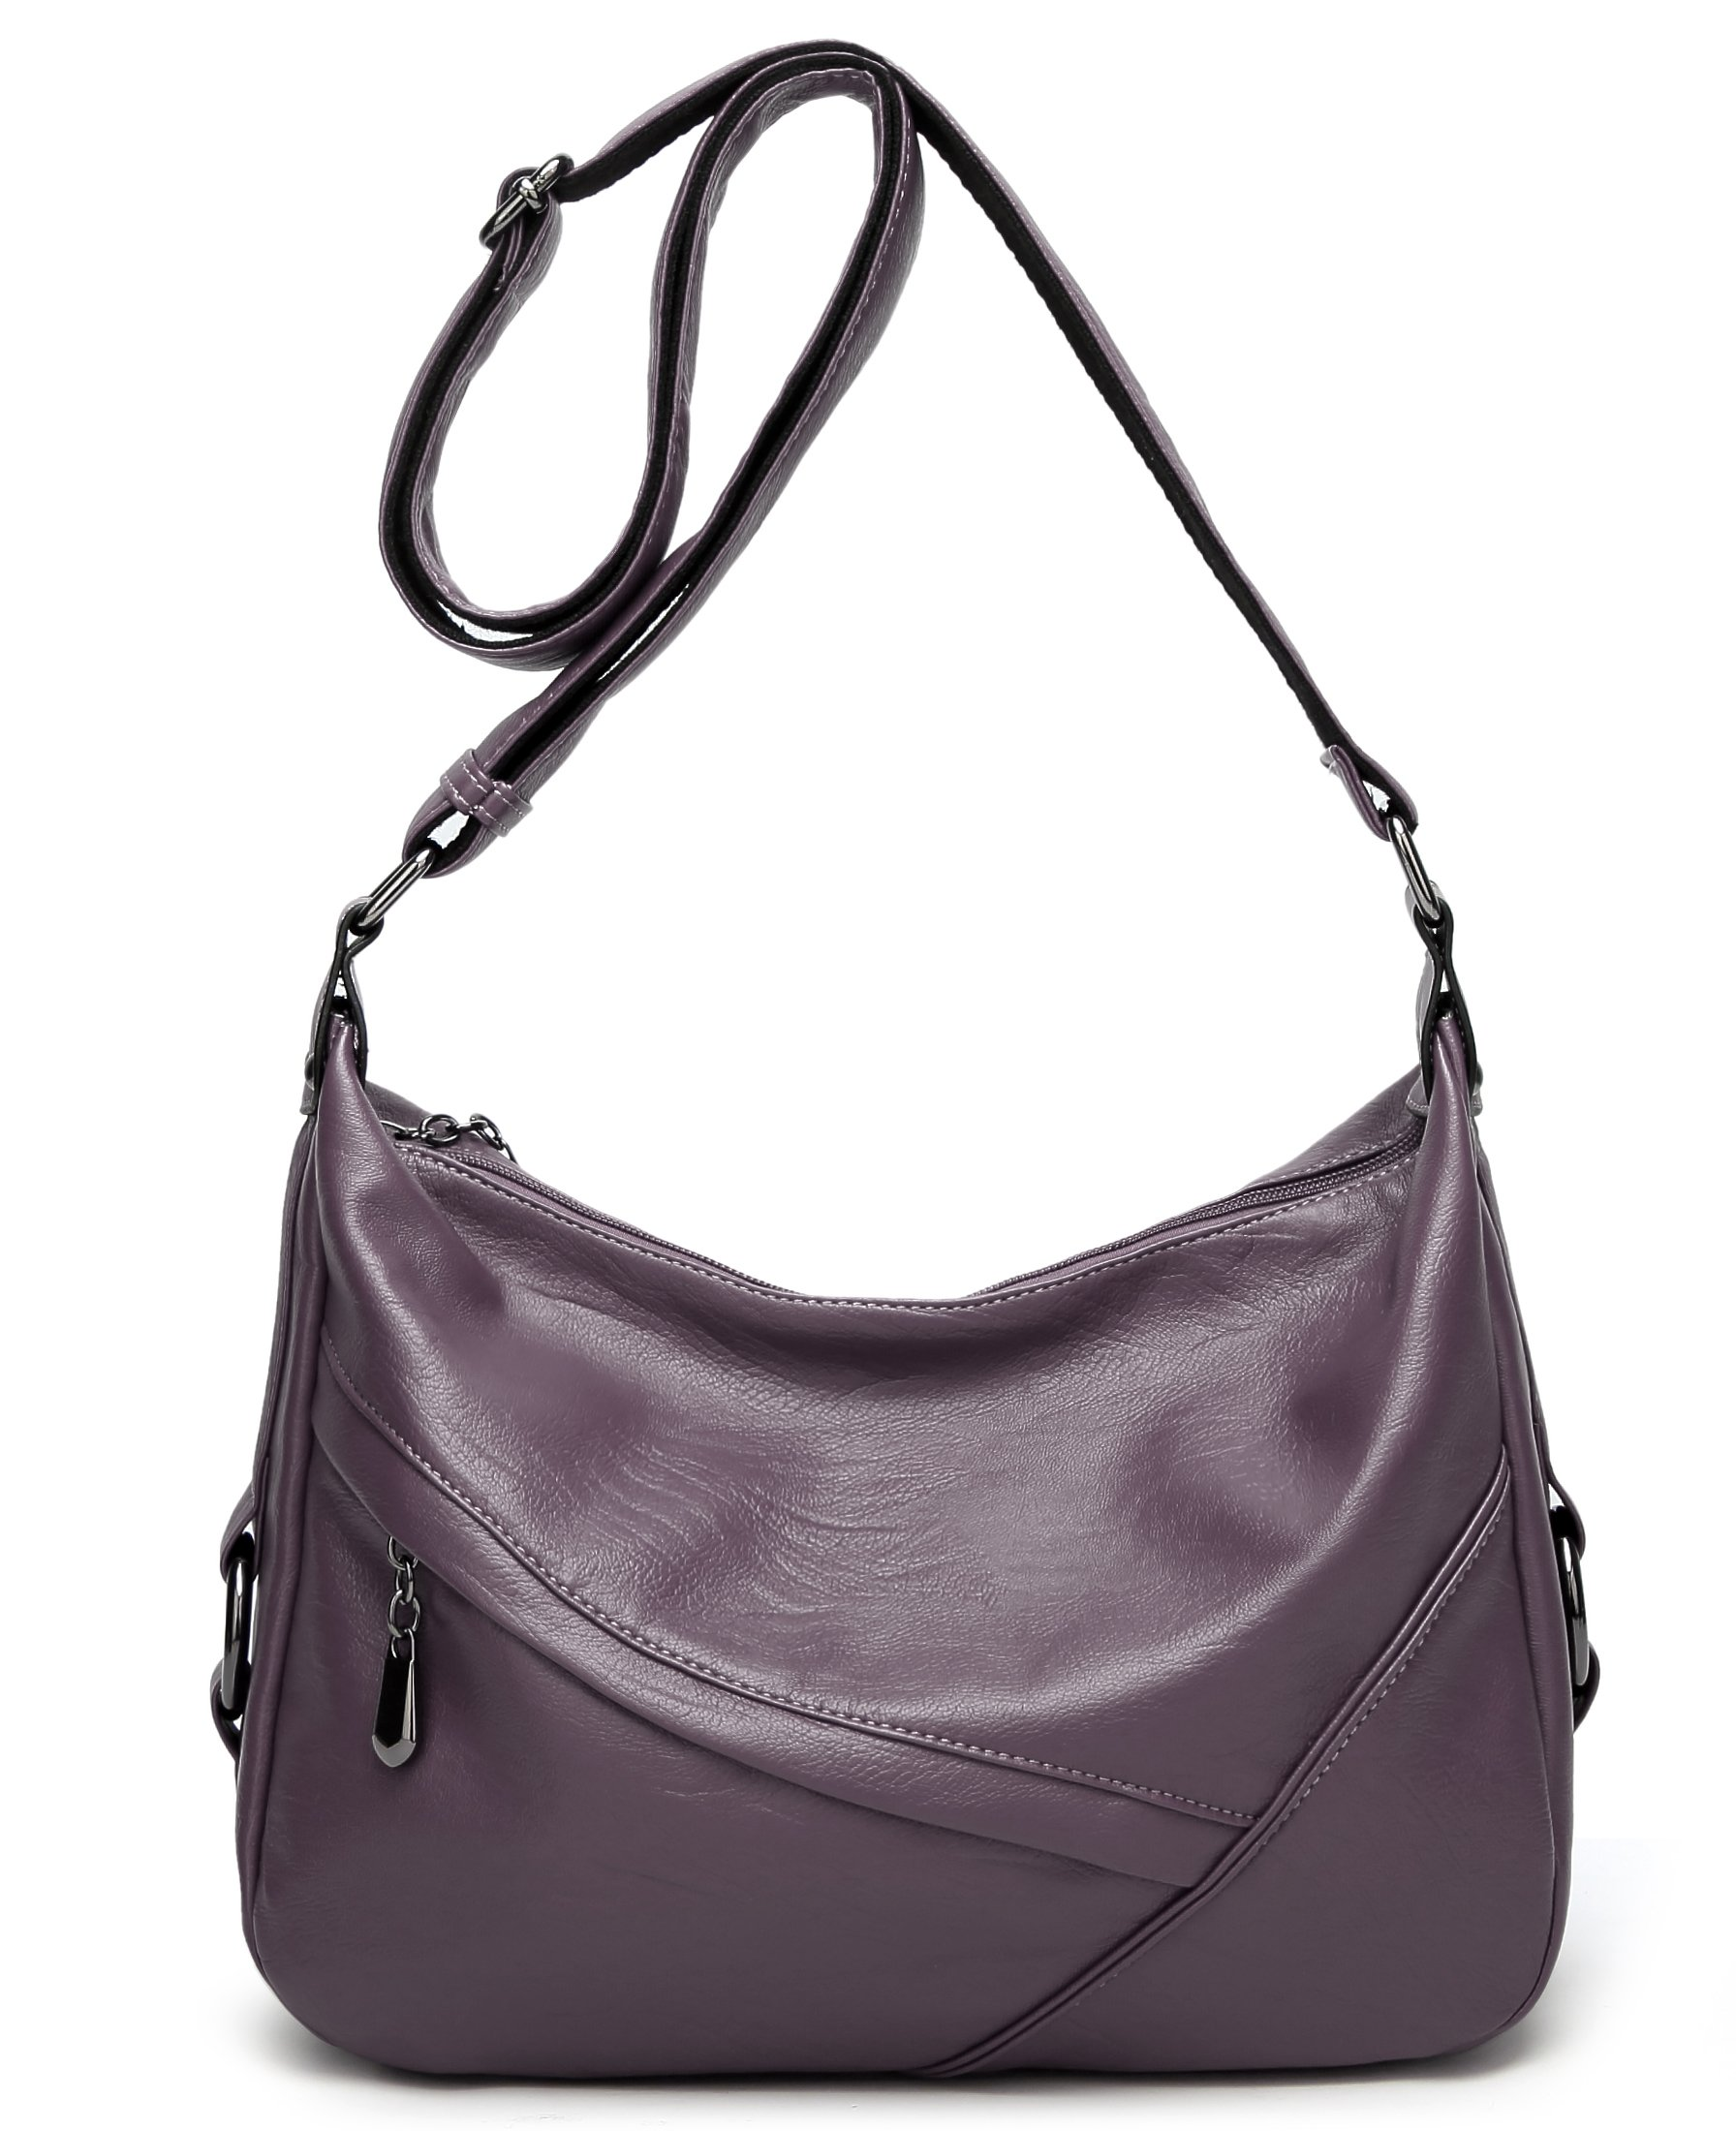 Molodo Women PU Leather Big Shoulder Bag Purse Handbag Tote Bags (Purple)